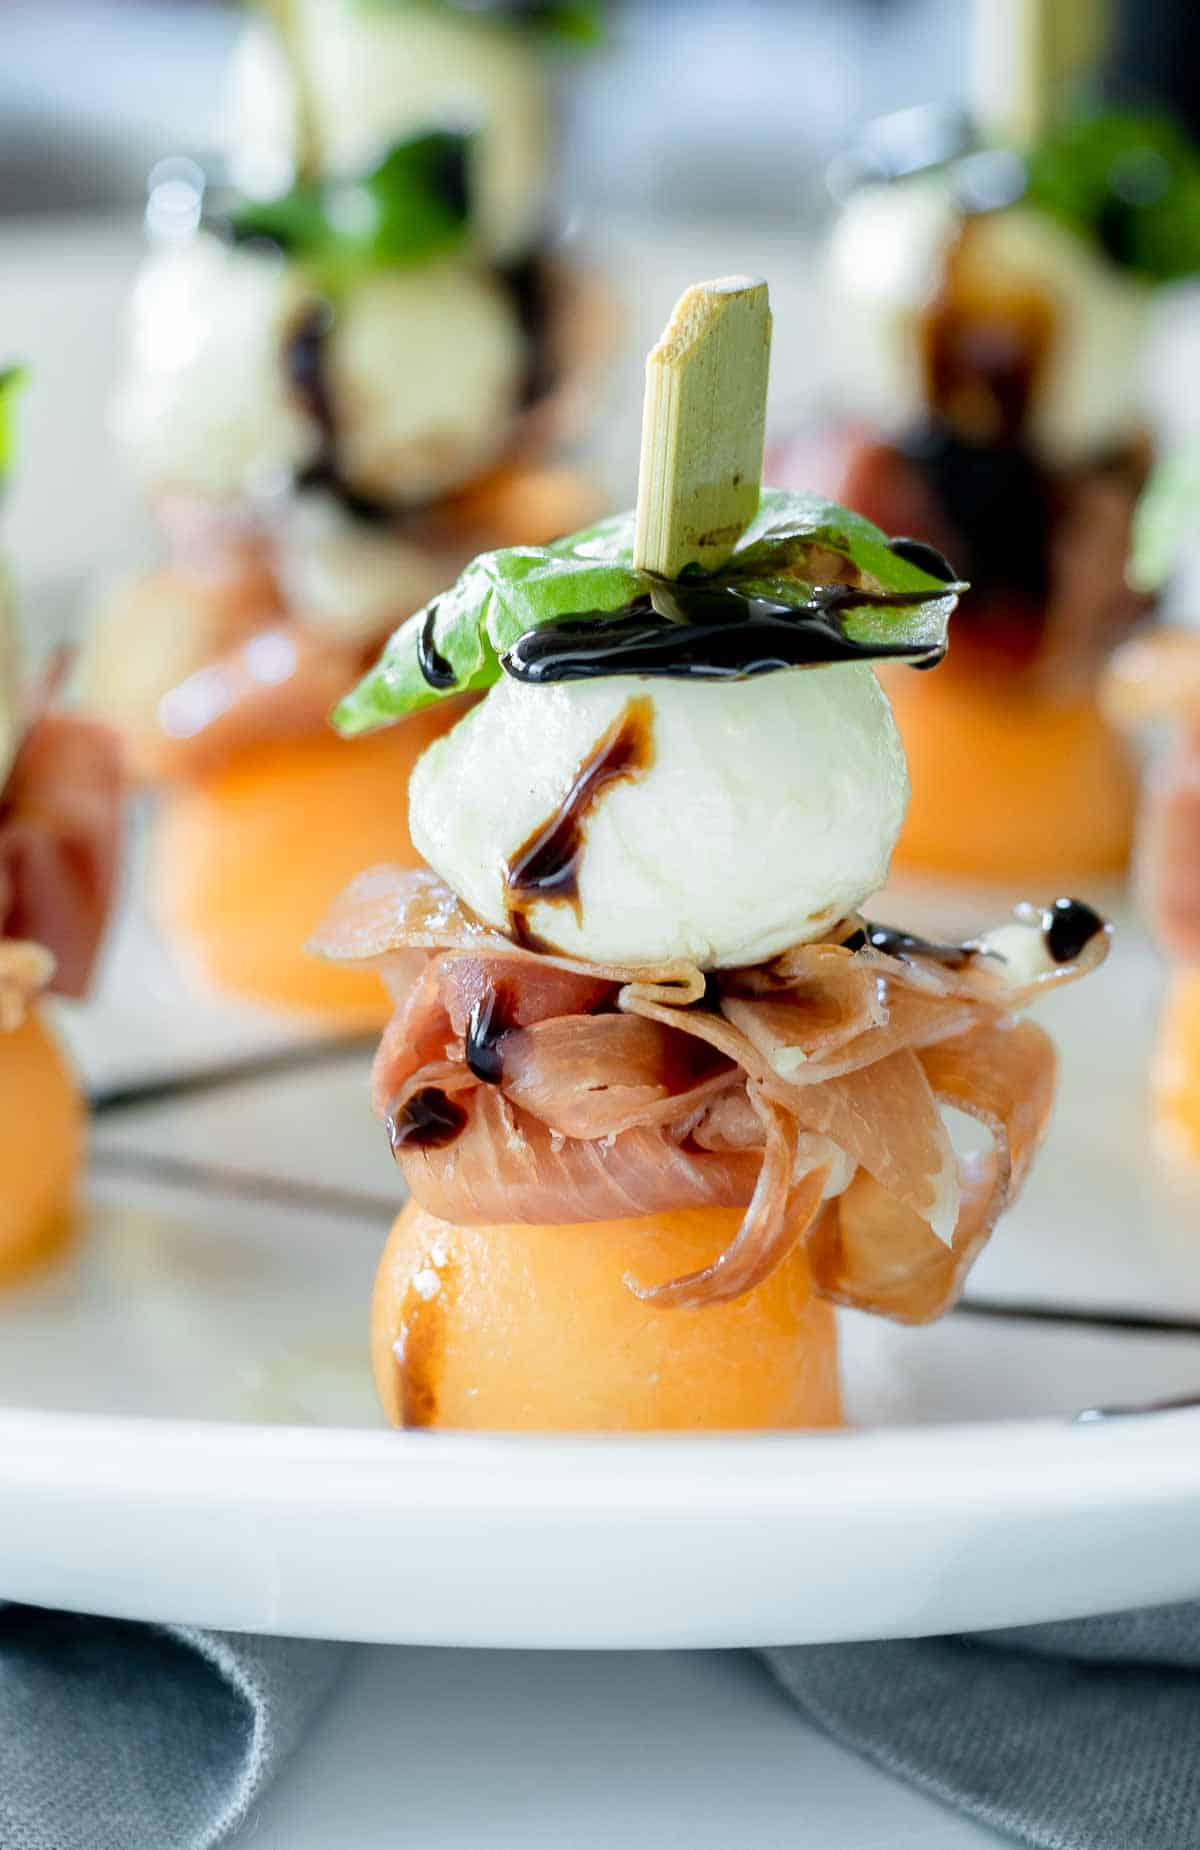 Melon, prosciutto and mozzarella skewers standing up with balsamic vinegar glaze.